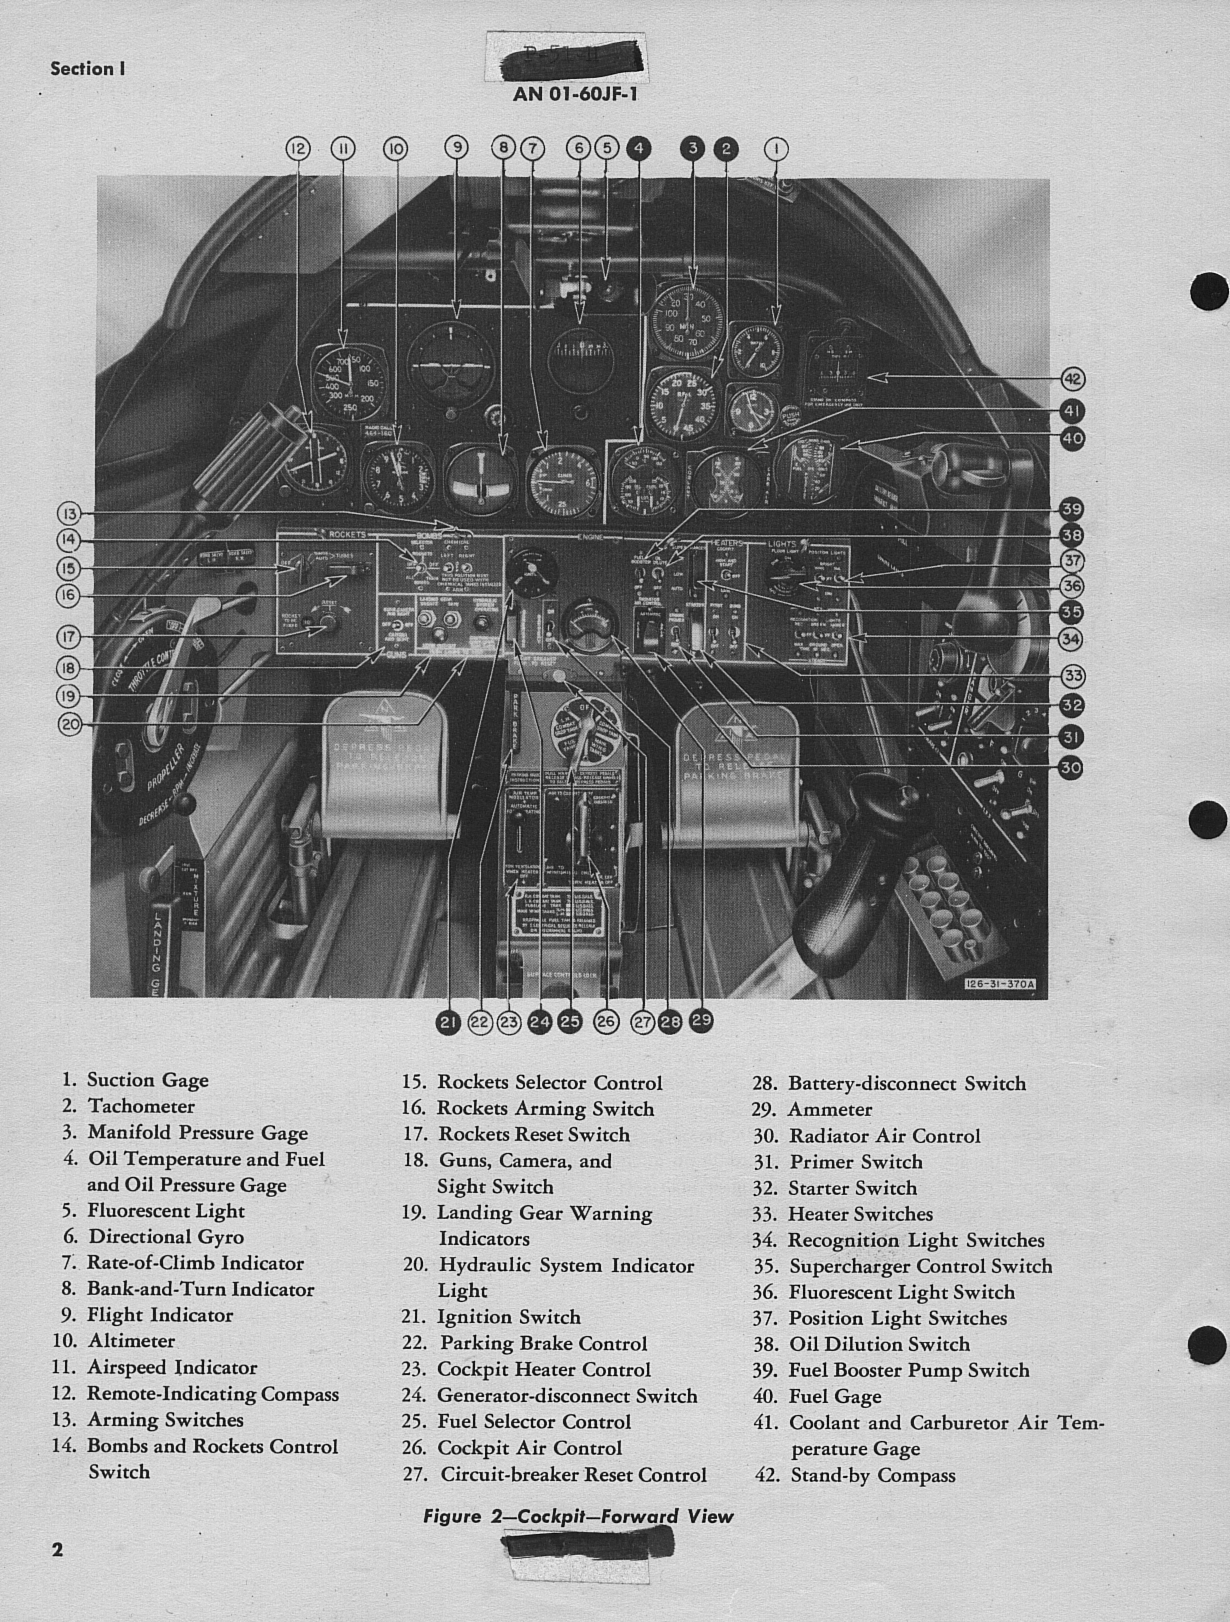 Sample page 6 from AirCorps Library document: Pilot's Handbook for P-51H-1, -5, and -10 Airplanes